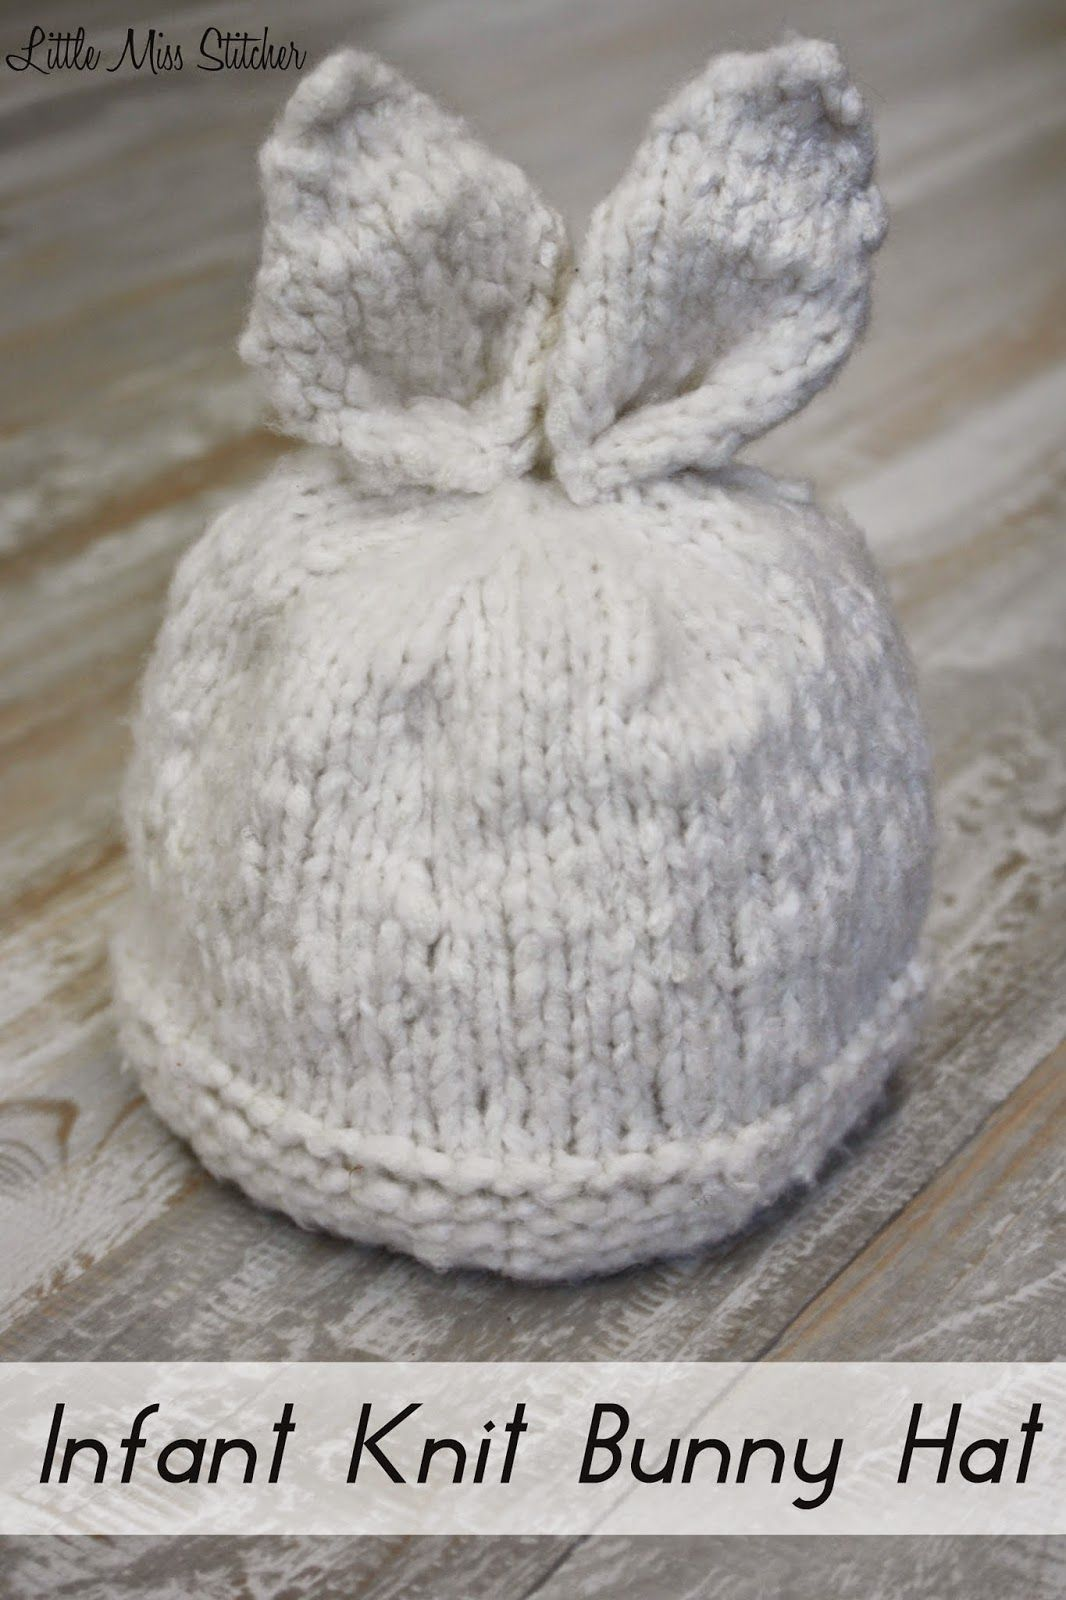 Infant Knit Bunny Hat Free Pattern | Hobbies Maybe | Pinterest ...